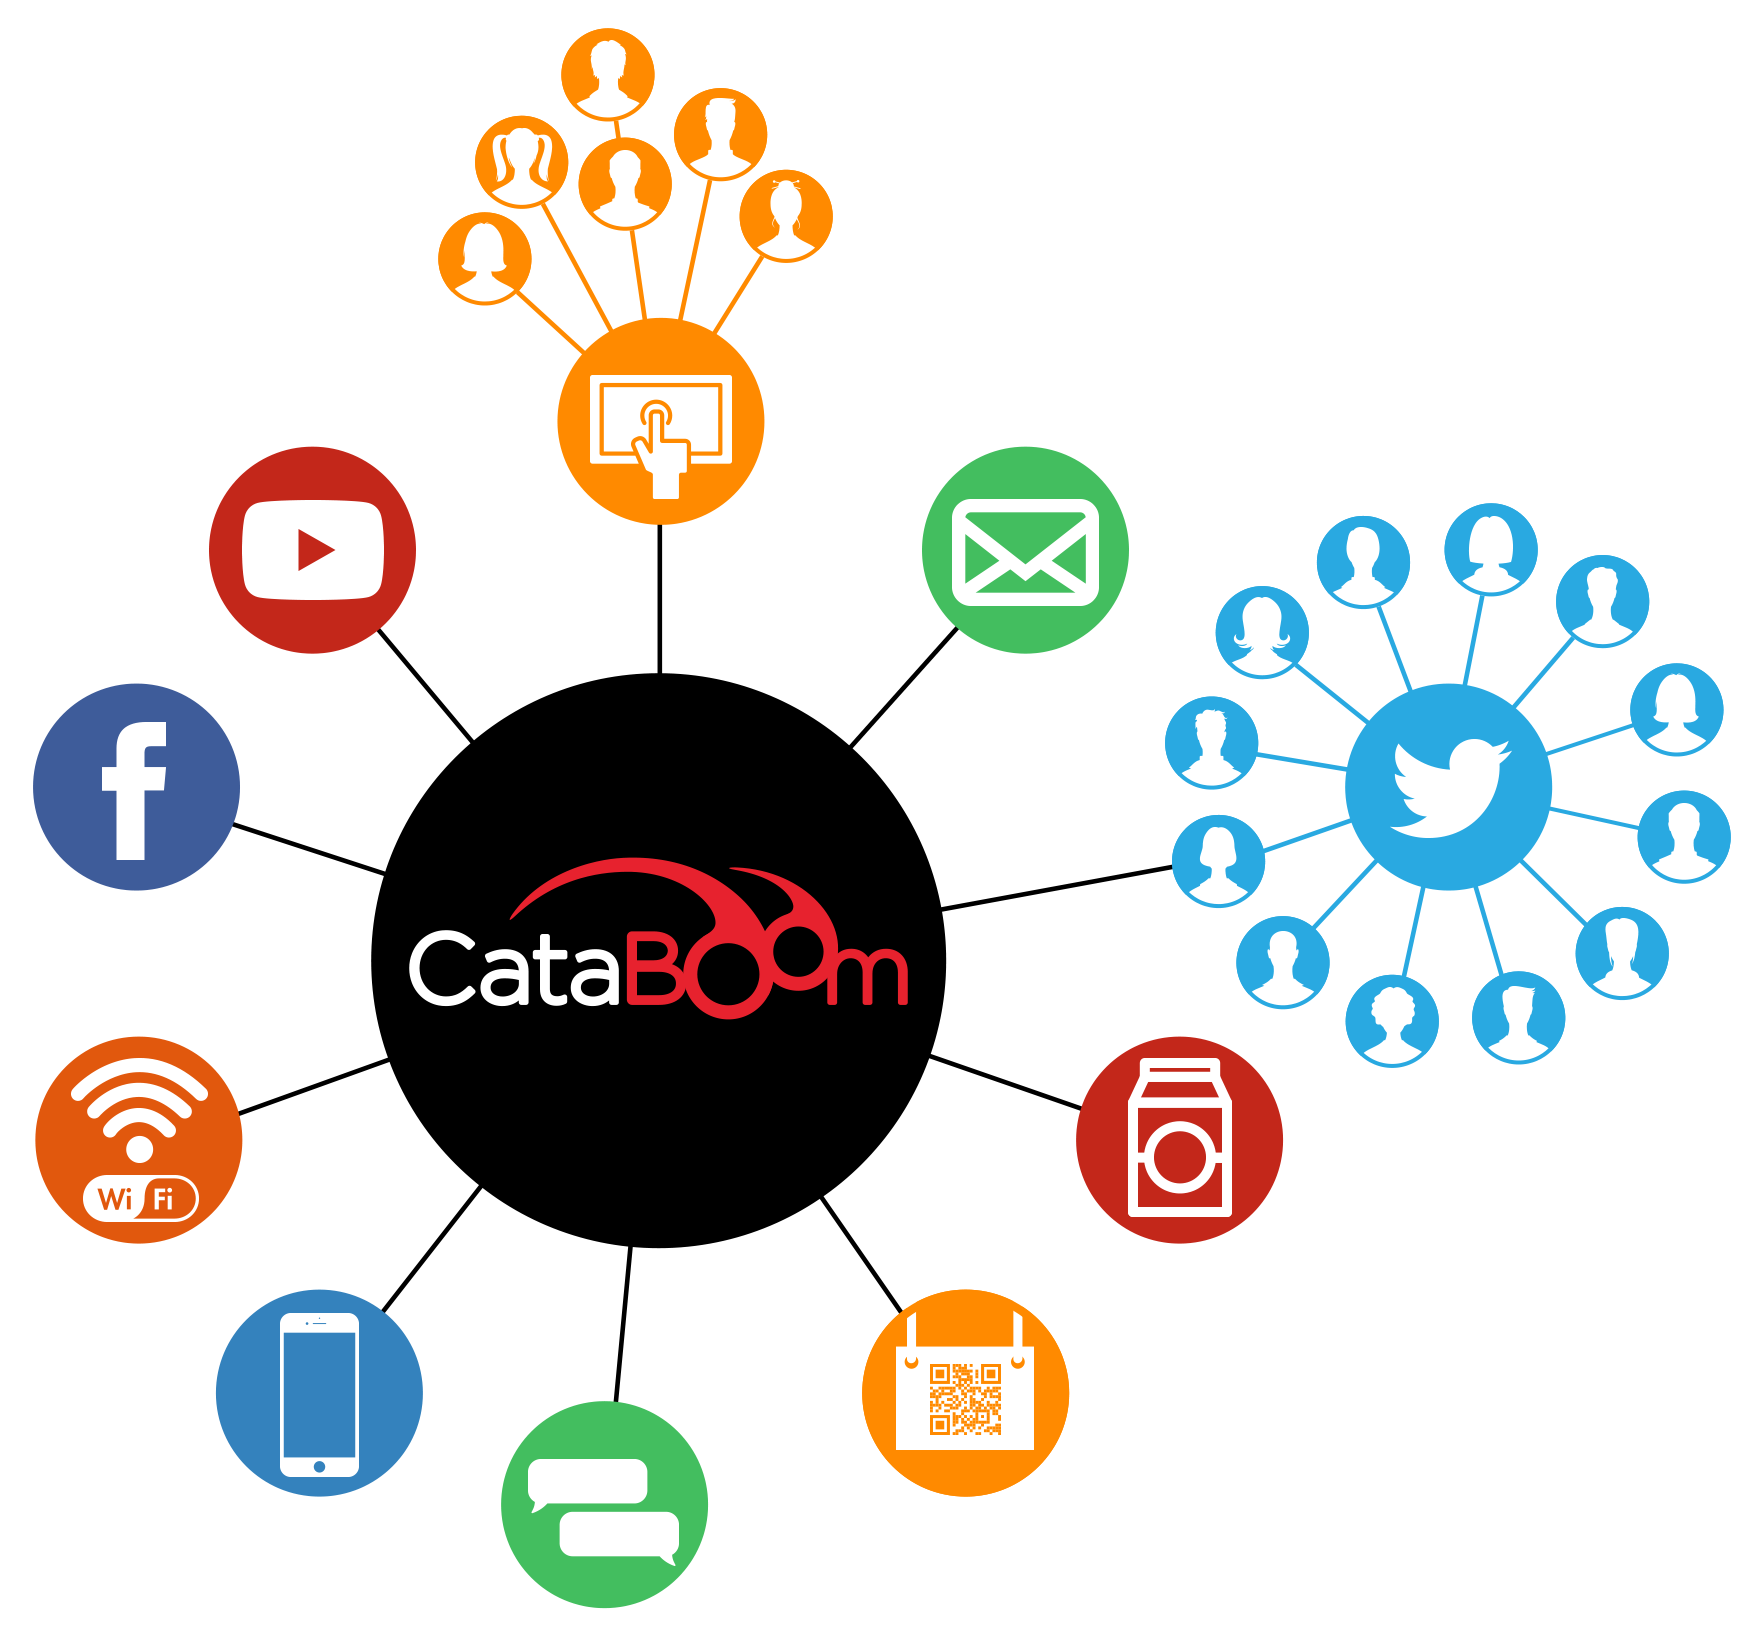 Because CataBoom's platform generates HTML5-based engagement campaigns, launching from any channel or touchpoint is possible, whether digital or physical